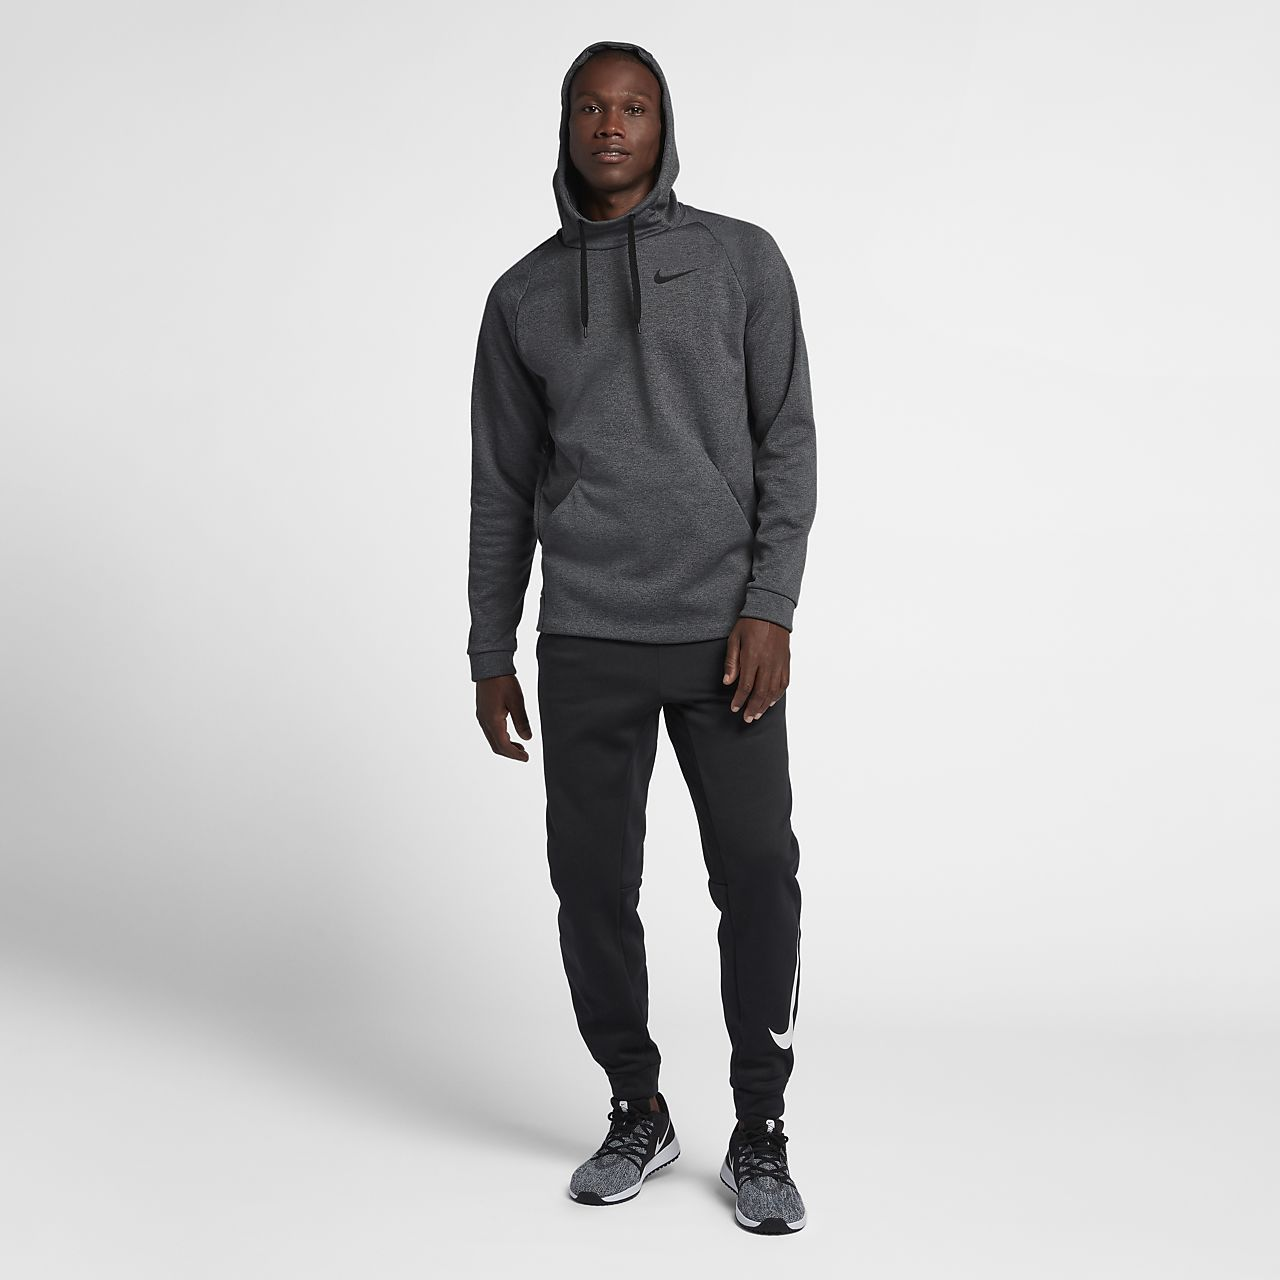 Nike Therma Men S Pullover Training Hoodie Pullover Men Mens Outfits Hoodies [ 1280 x 1280 Pixel ]